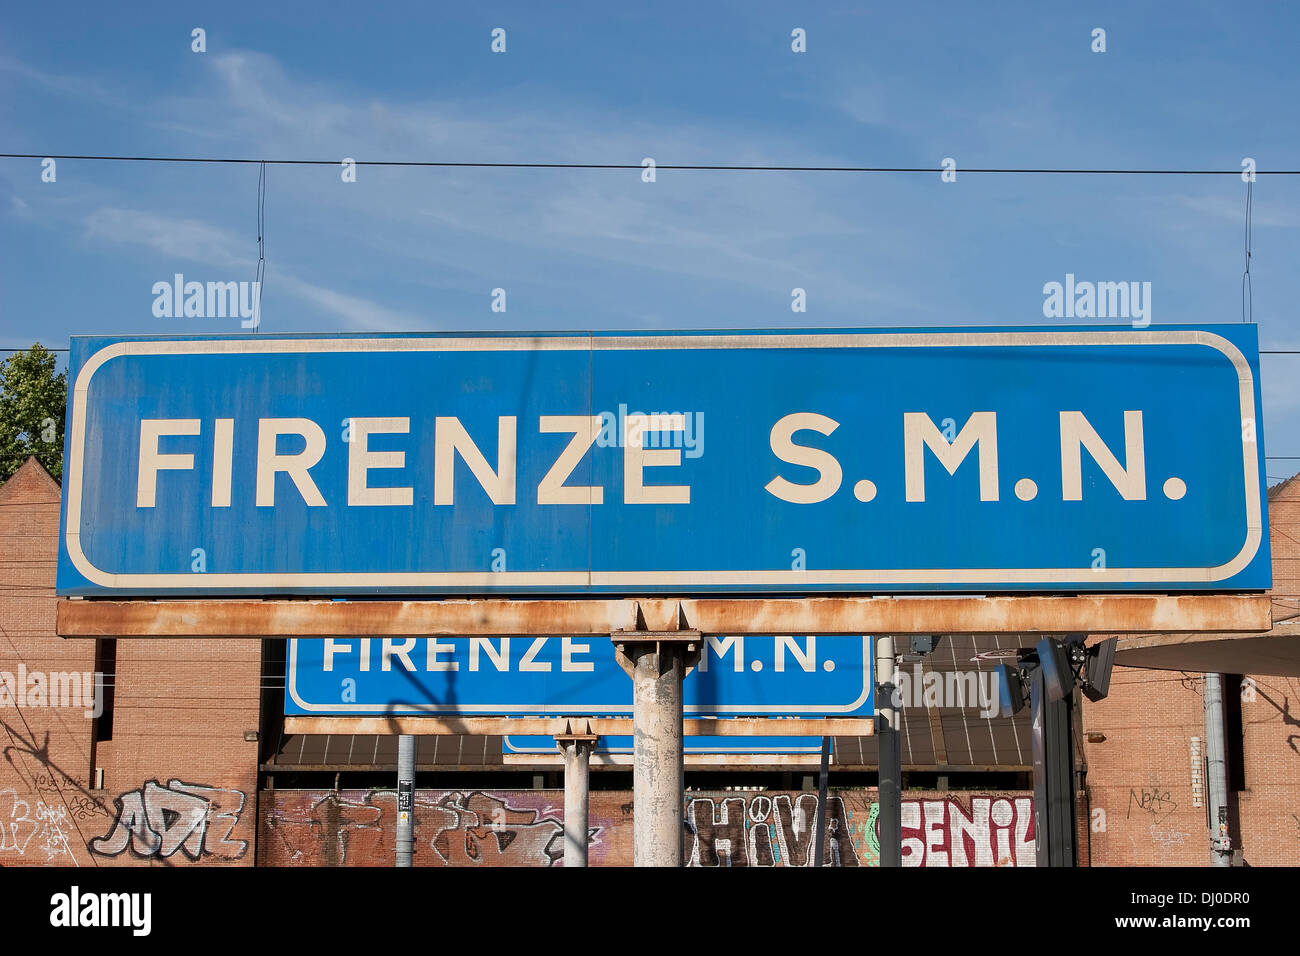 A train station platform sign for Firenze Santa Maria Novella, Florence, Italy. - Stock Image